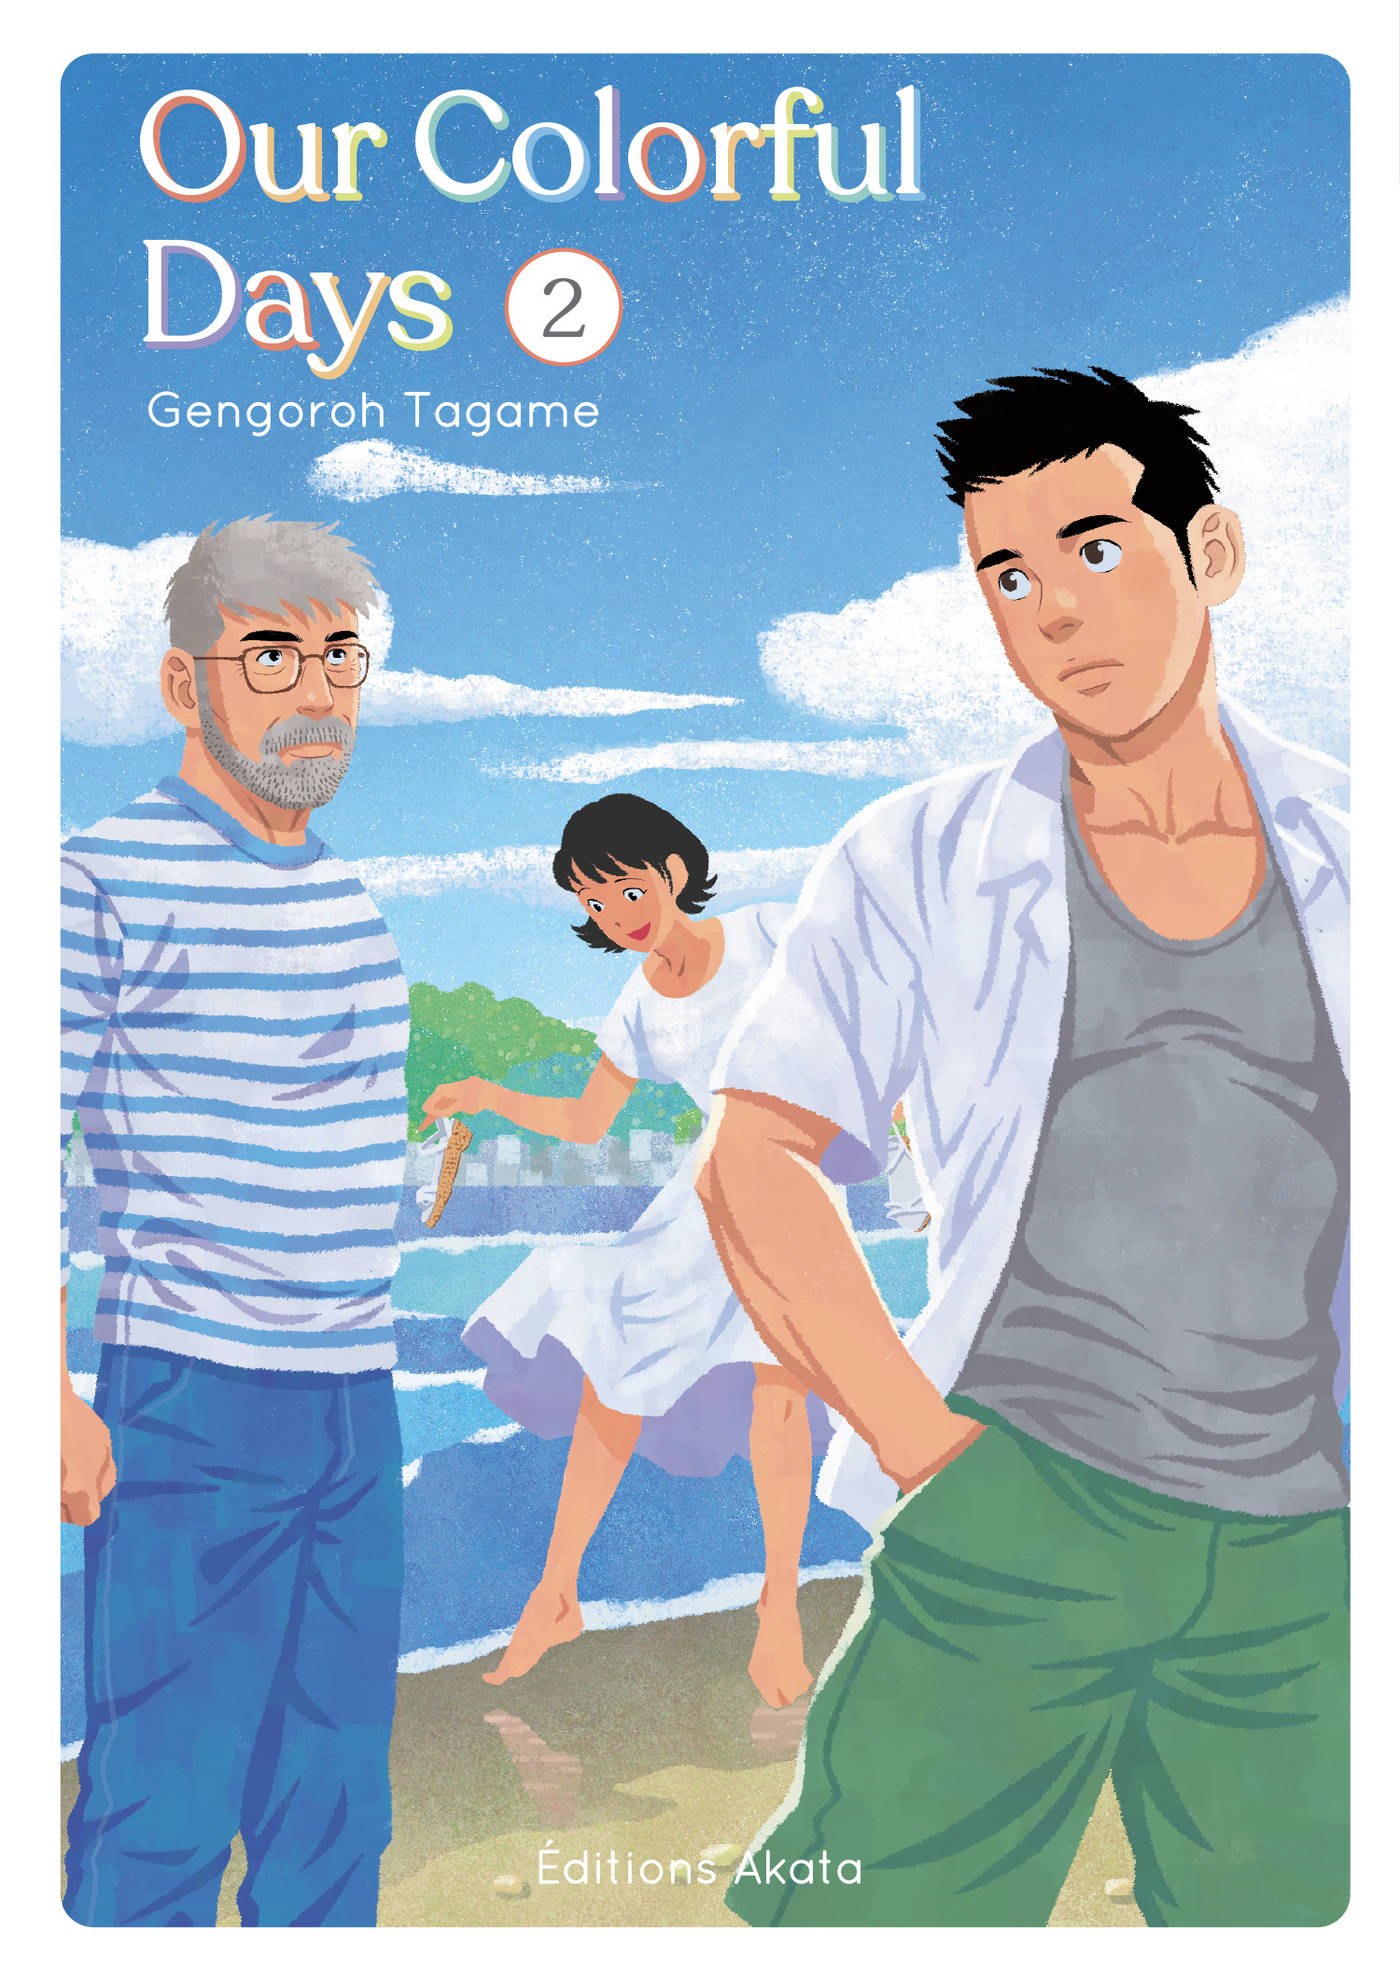 Our Colorful Days 2